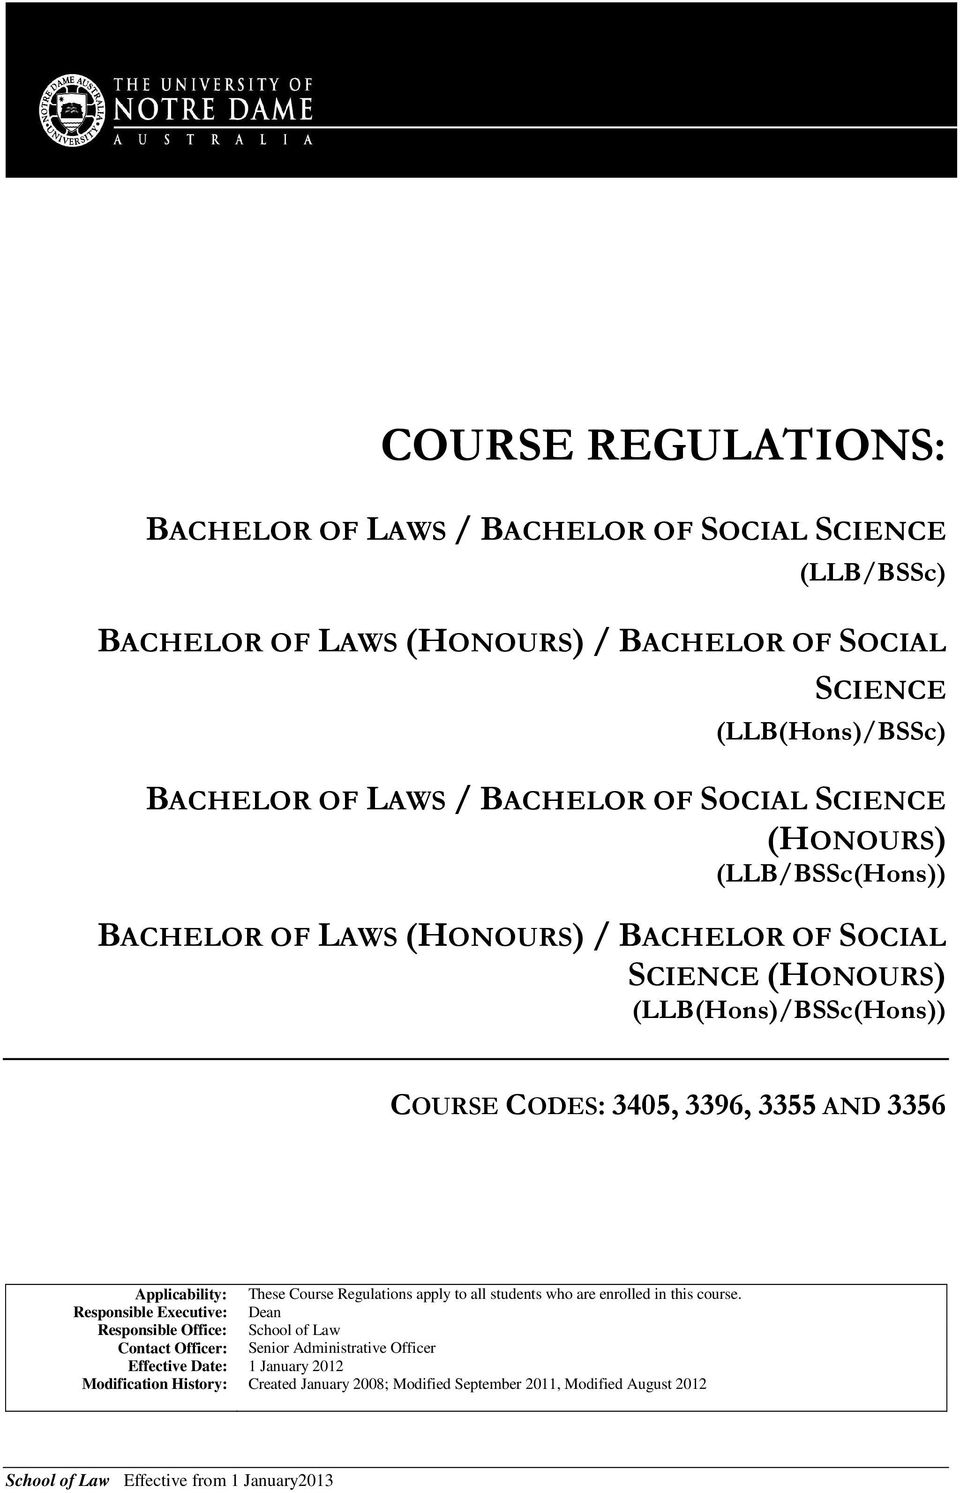 Applicability: These Course Regulations apply to all students who are enrolled in this course.